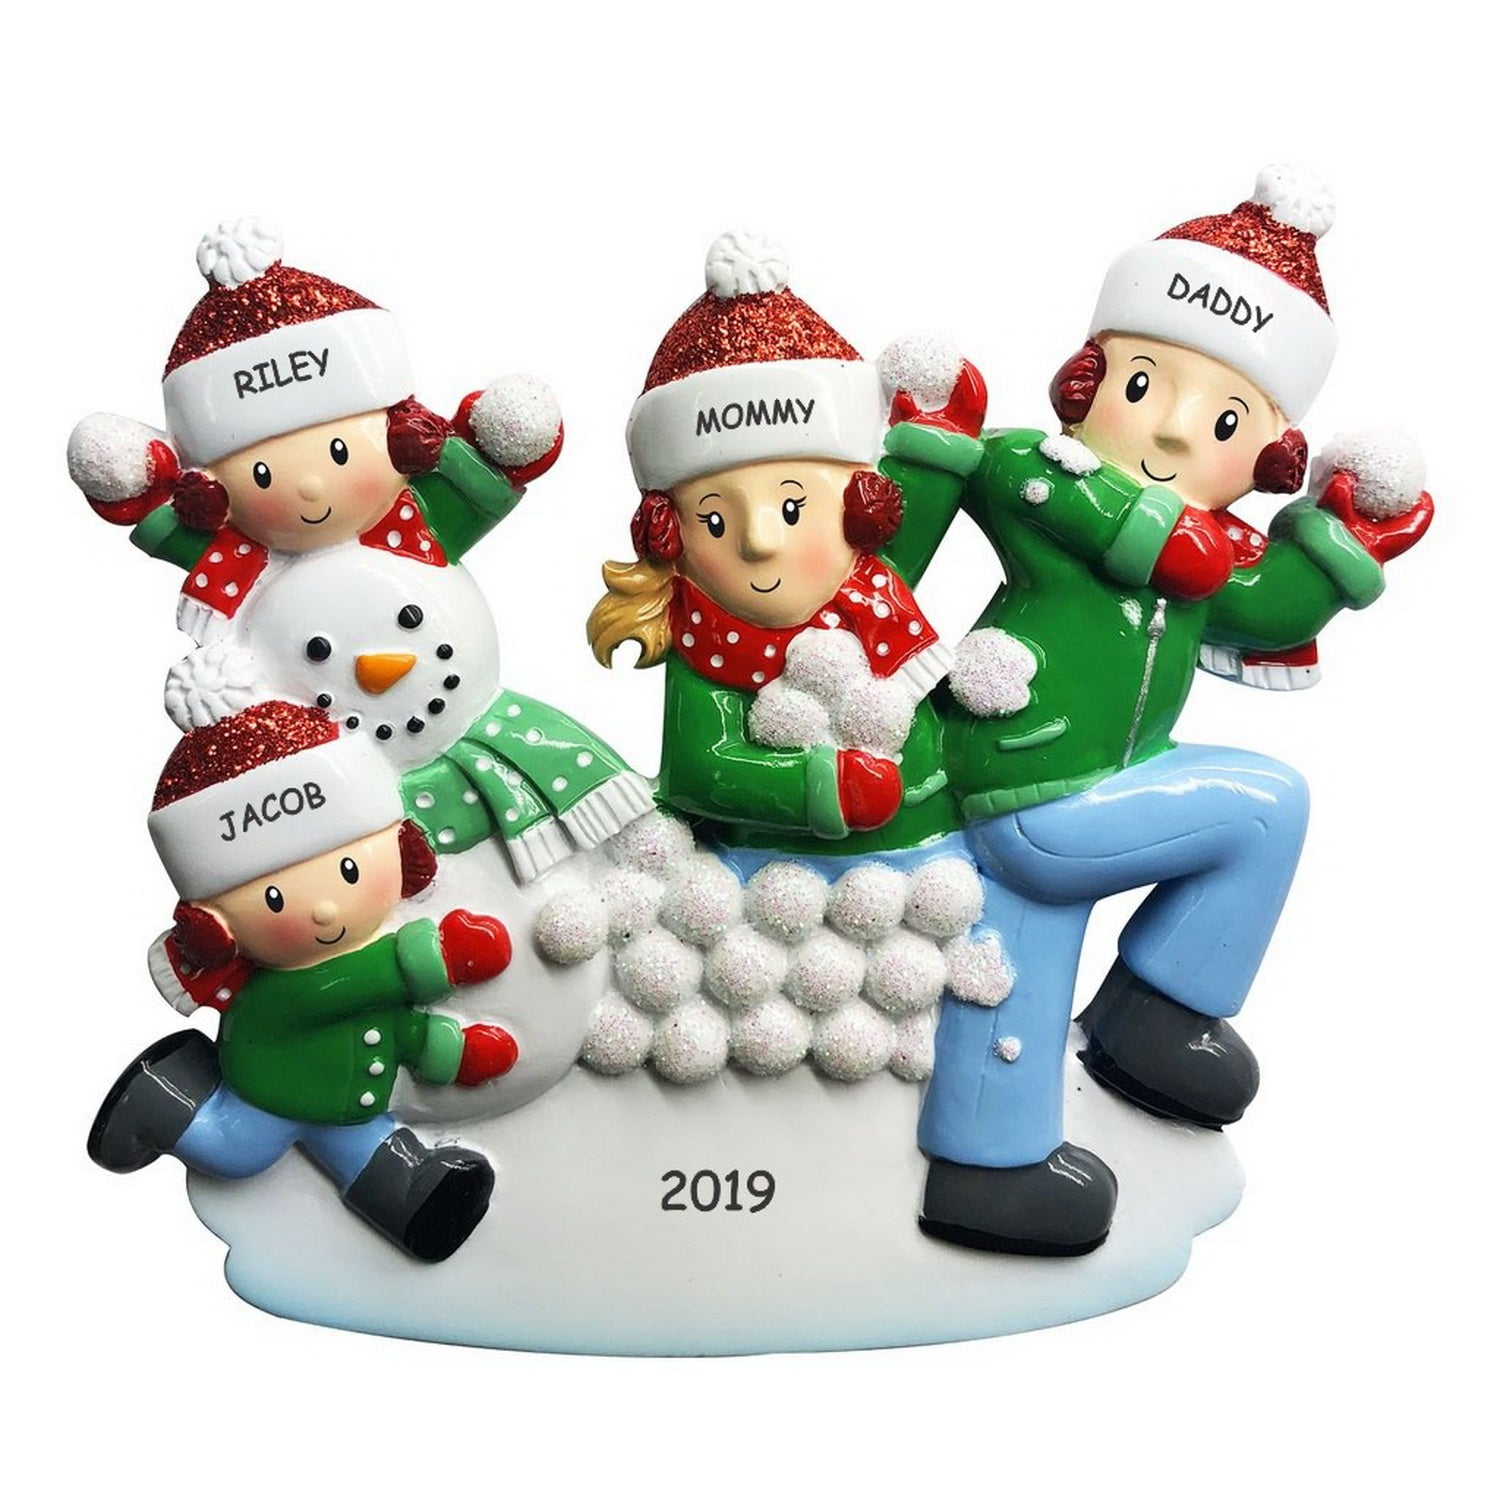 Personalized Snowball Fun Family Christmas Ornament - Family of 4